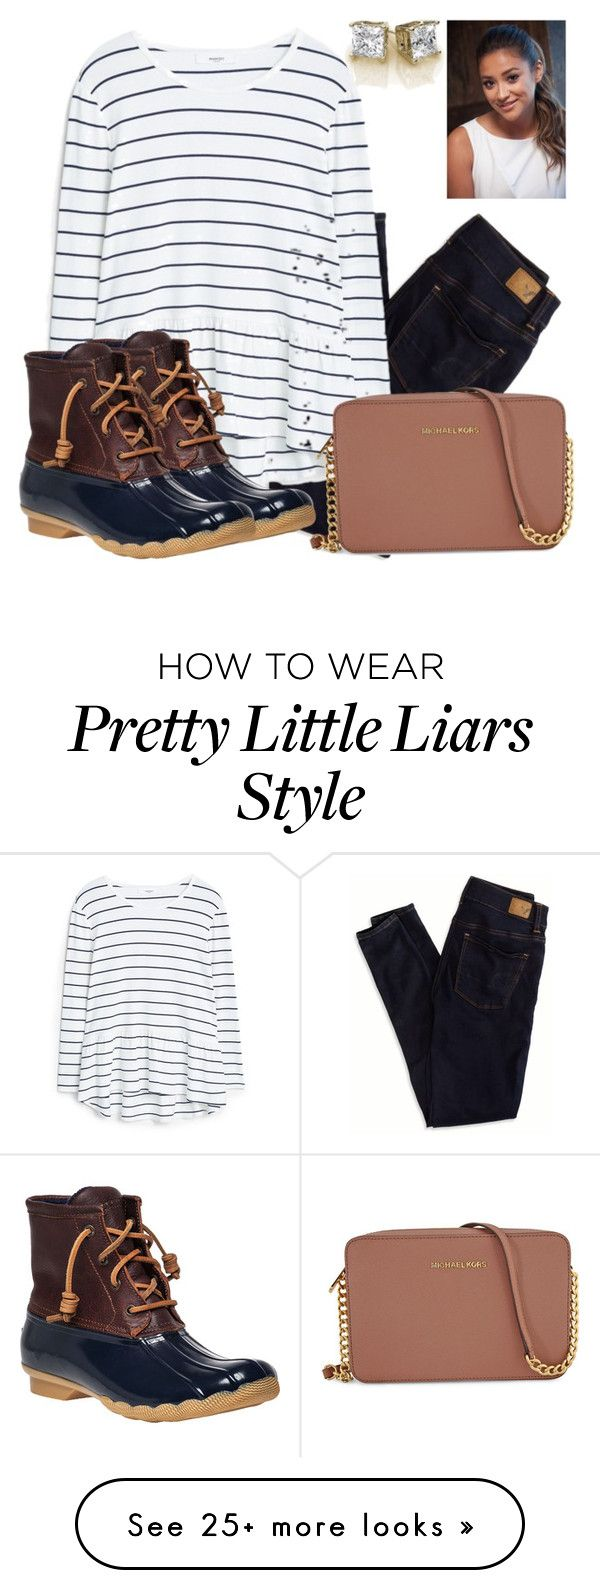 """sperry〽️"" by racheldowdd on Polyvore featuring American Eagle Outfitters, MANGO, Sperry Top-Sider and Michael Kors"